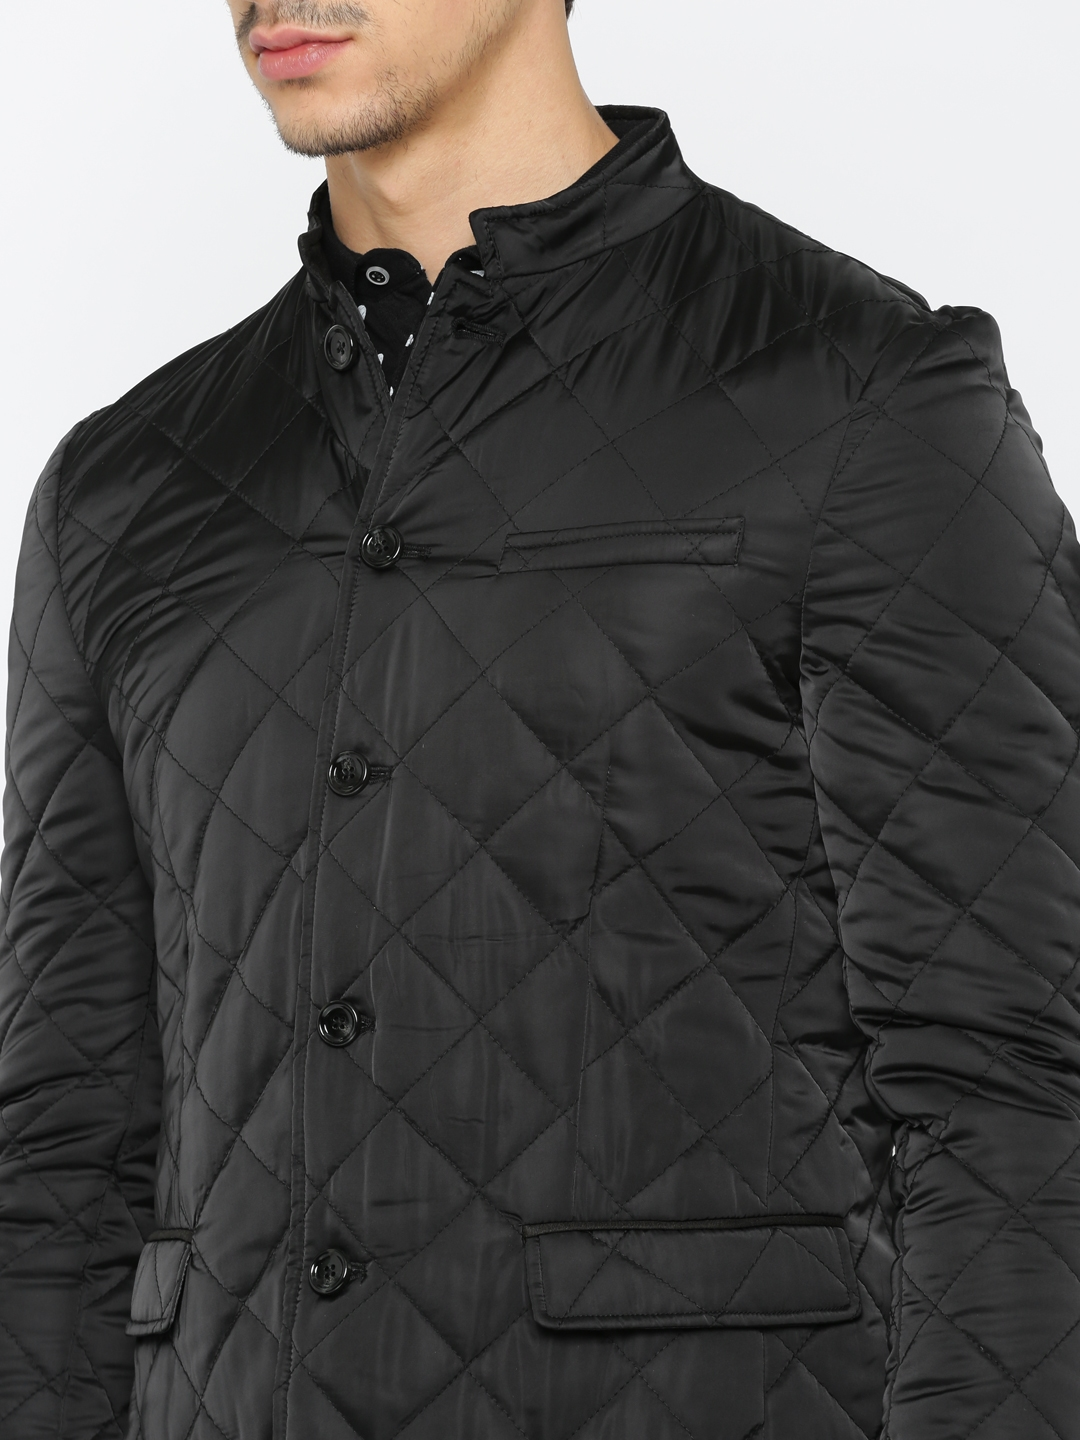 Buy Invictus Black Slim Fit Quilted Jacket Jackets For Men Myntra